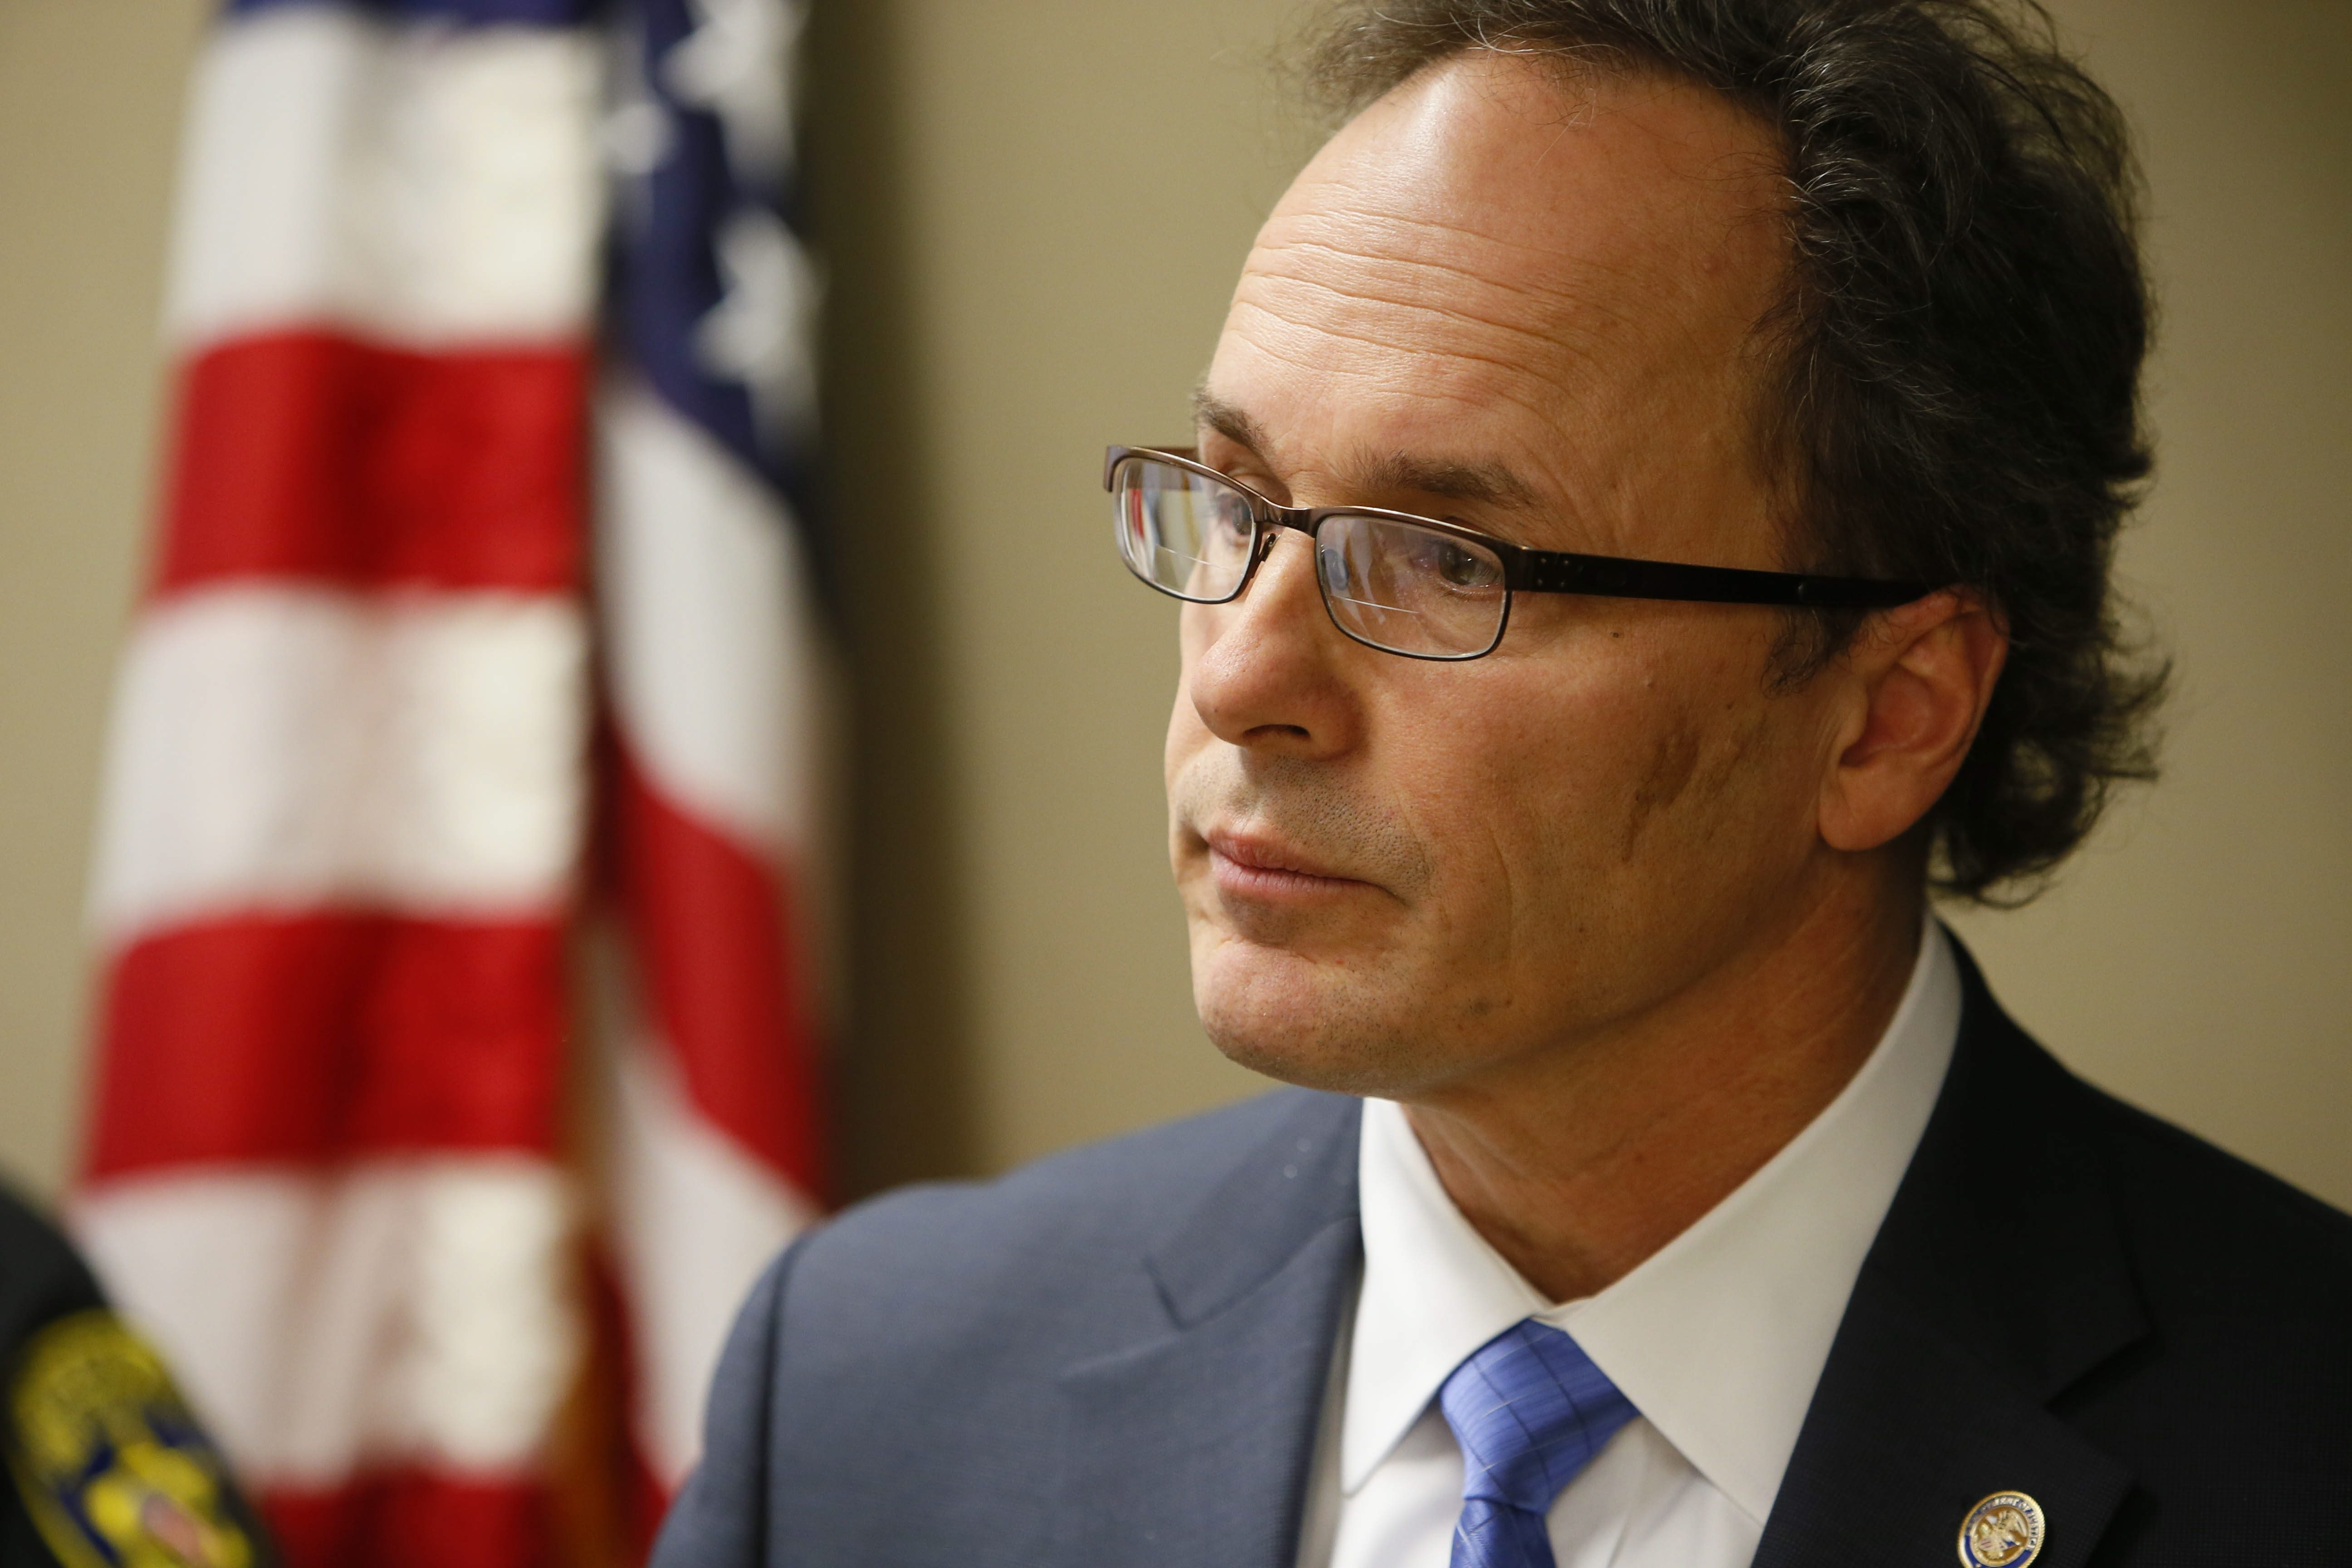 U.S. Attorney William J. Hochul says his office has a track record of already doing what Attorney General Eric Holder has suggested – focusing on drug cases that involve violence or gangs.